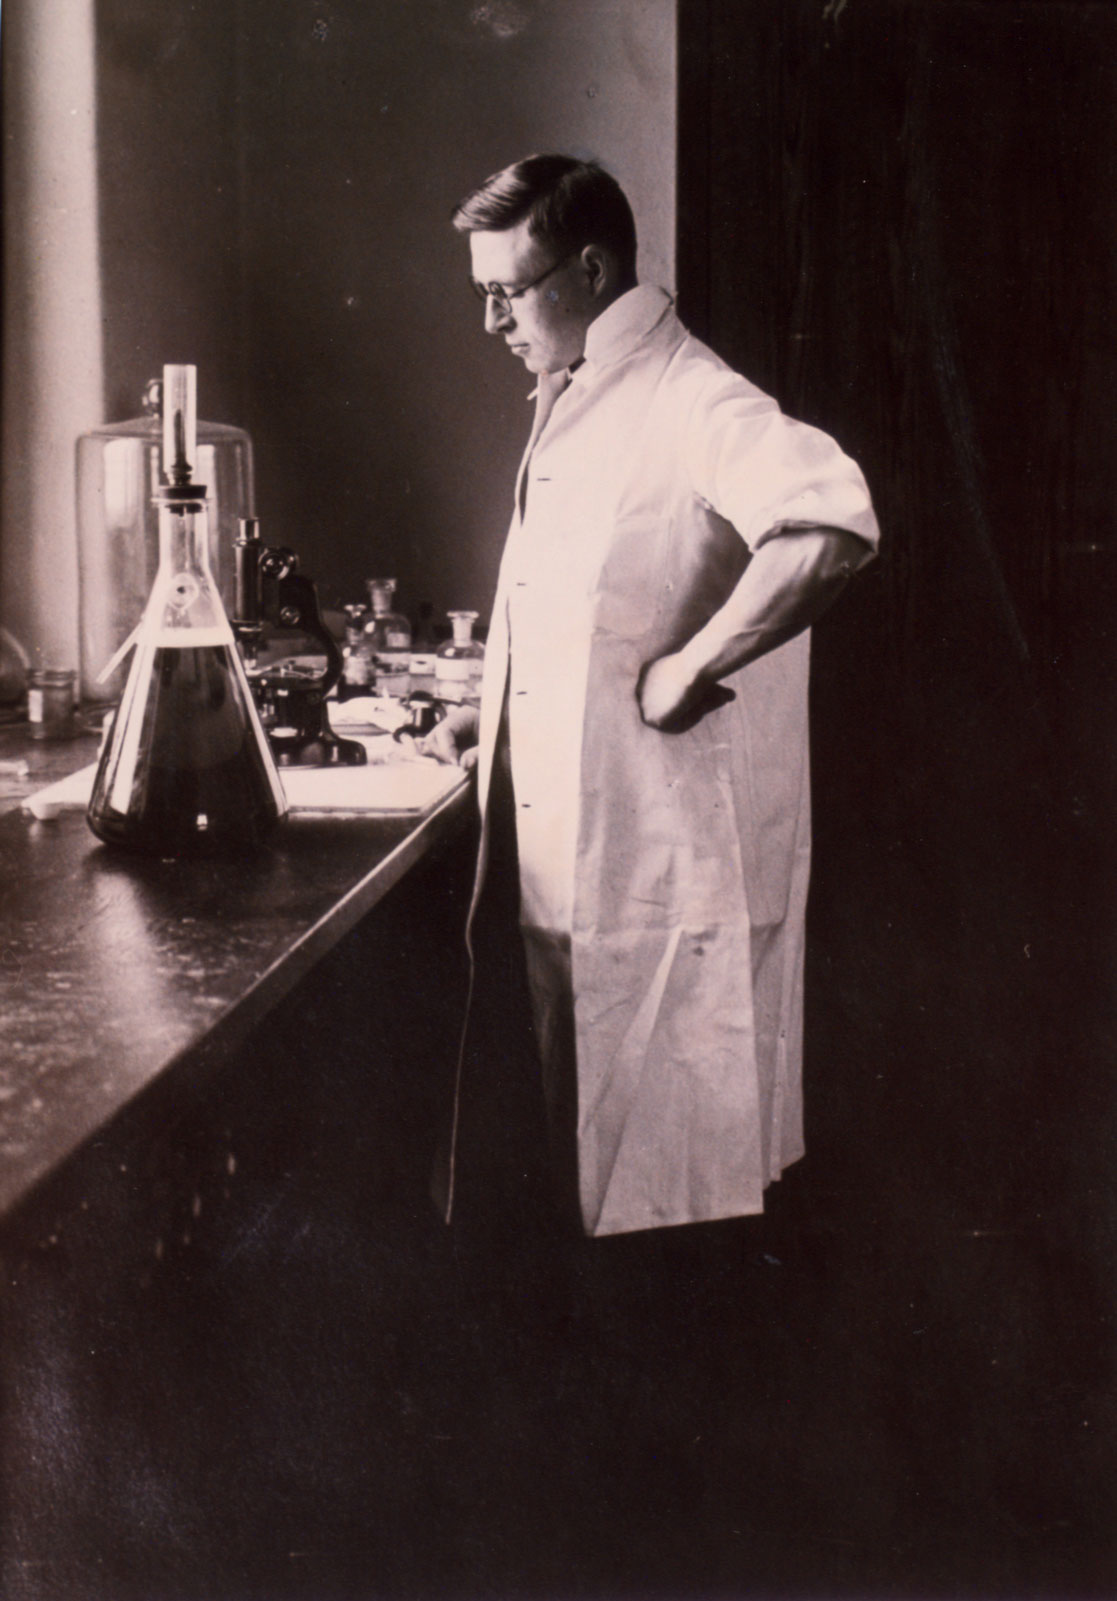 A young James B. Collip wears a lab coat and glasses. He stands in front of a lab bench containing a microscope and glassware.